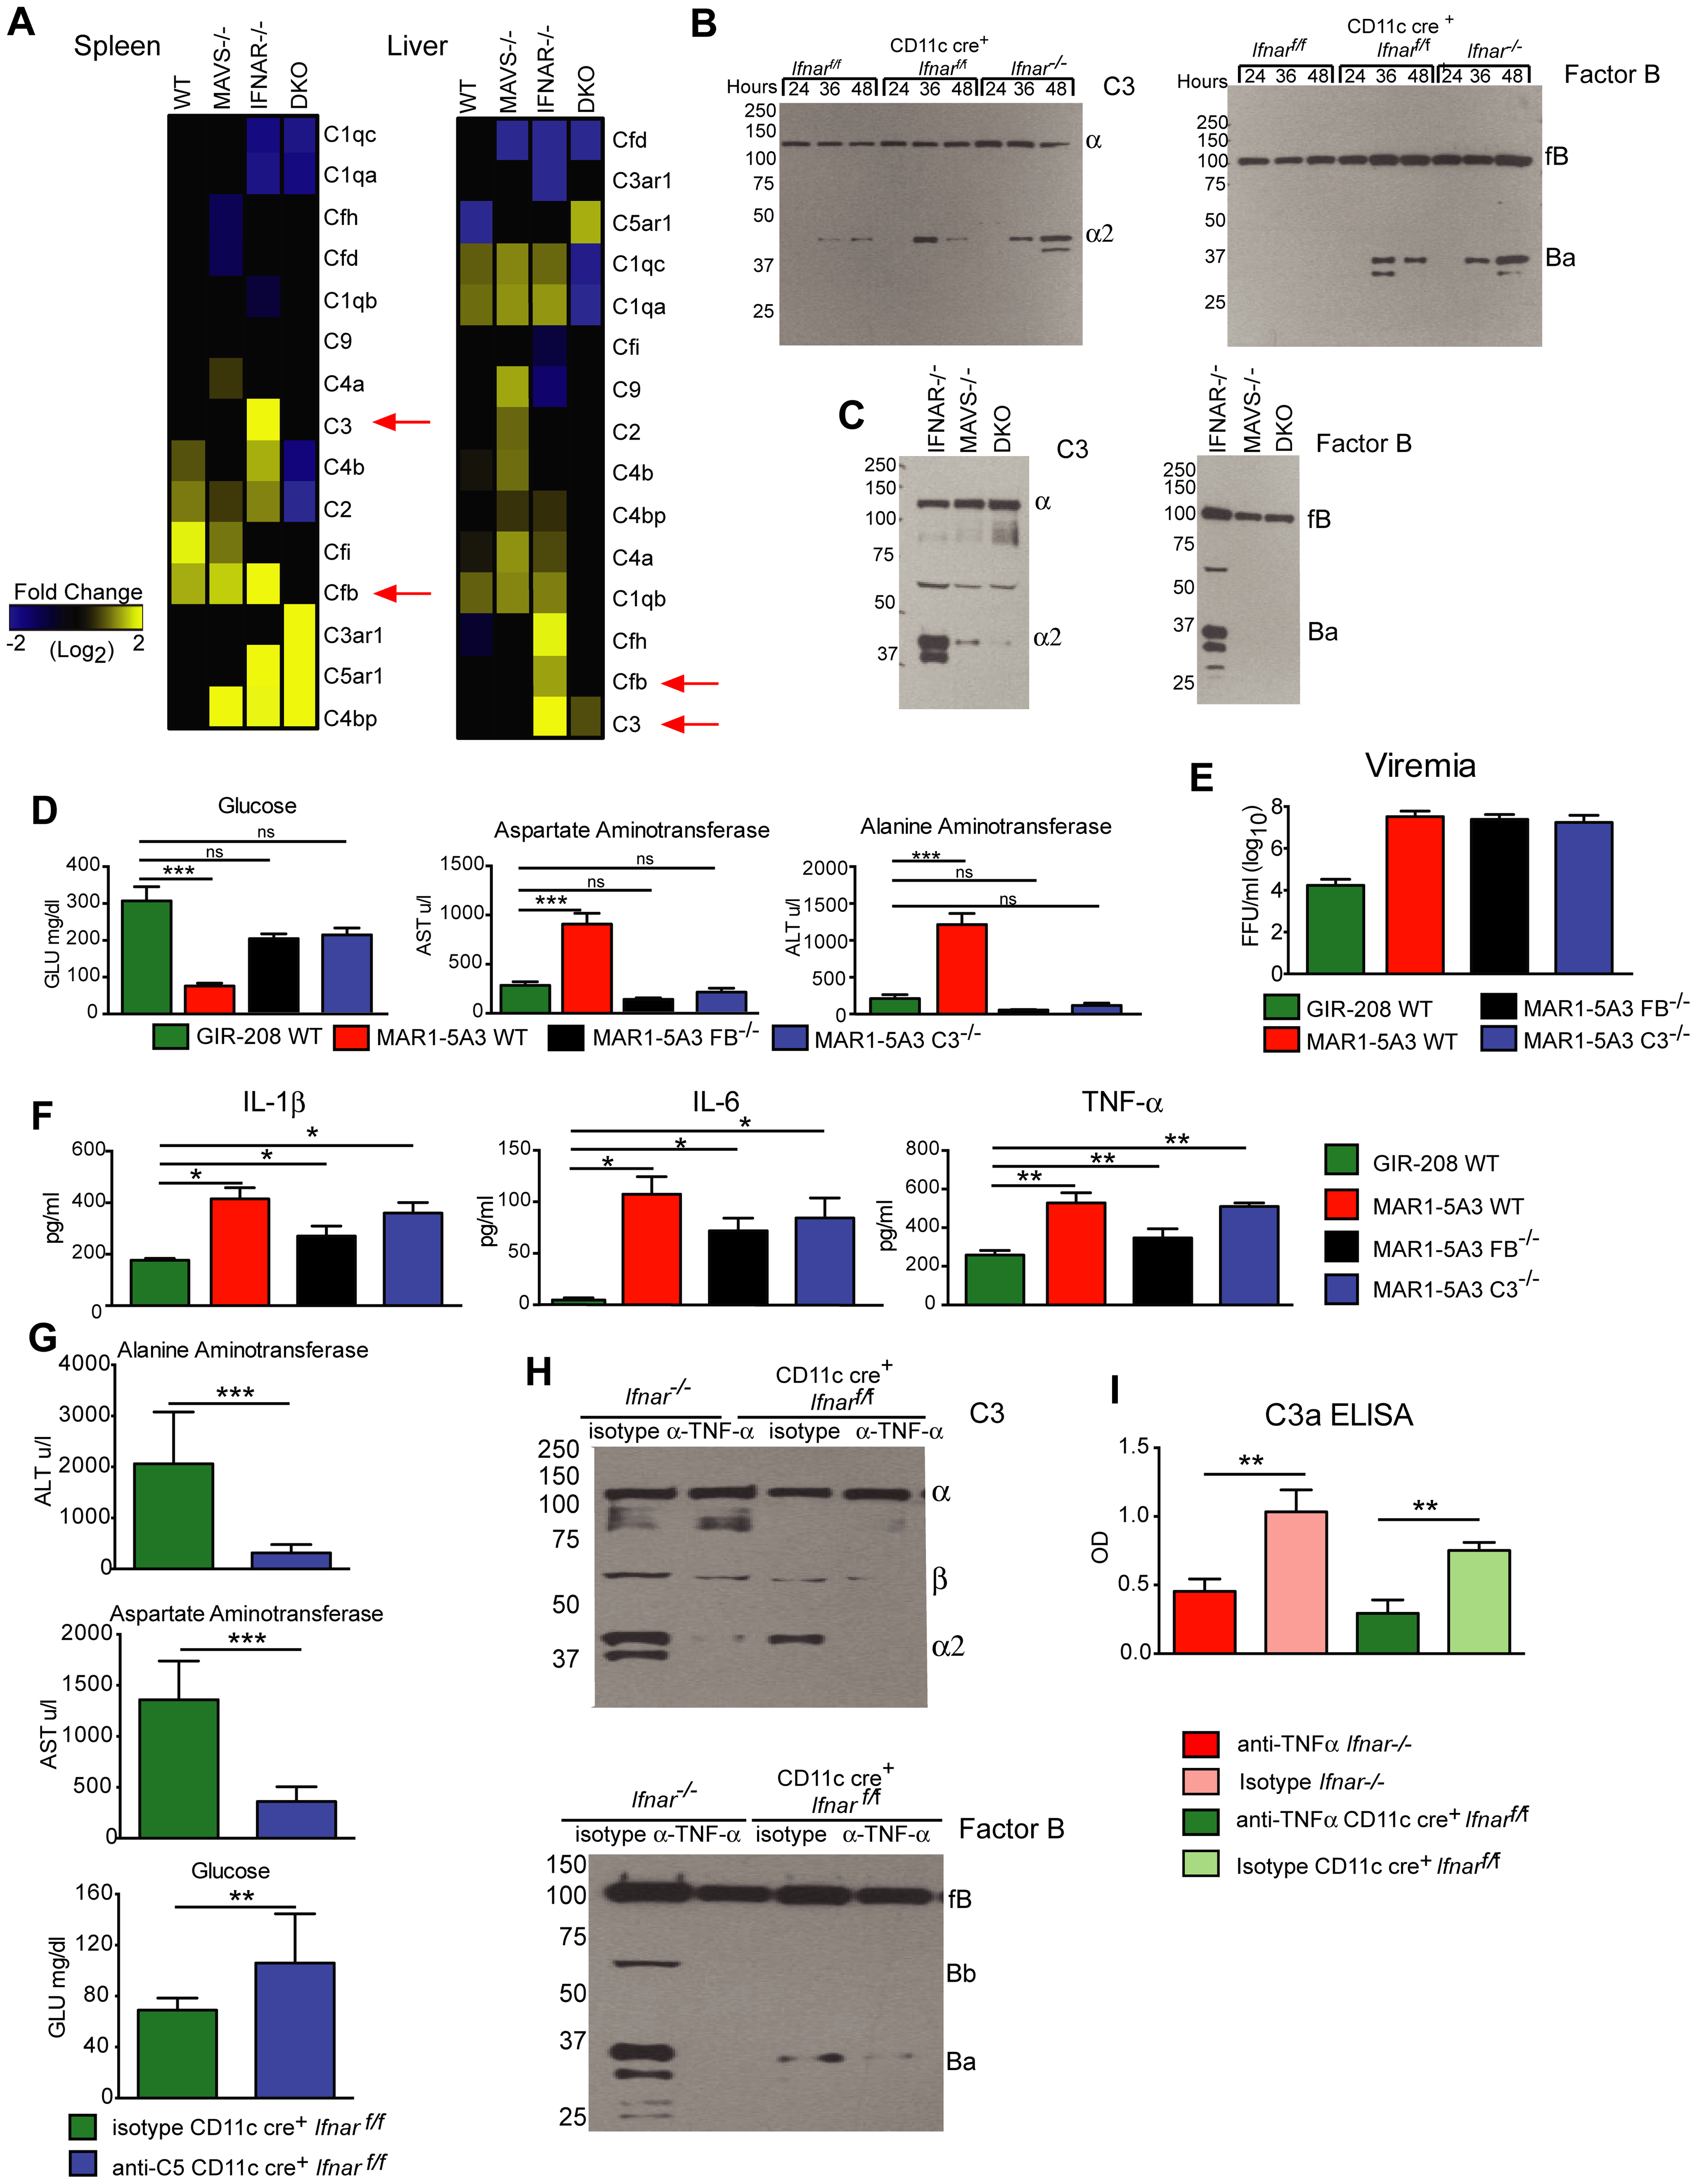 Complement activation contributes to liver injury after WNV infection.